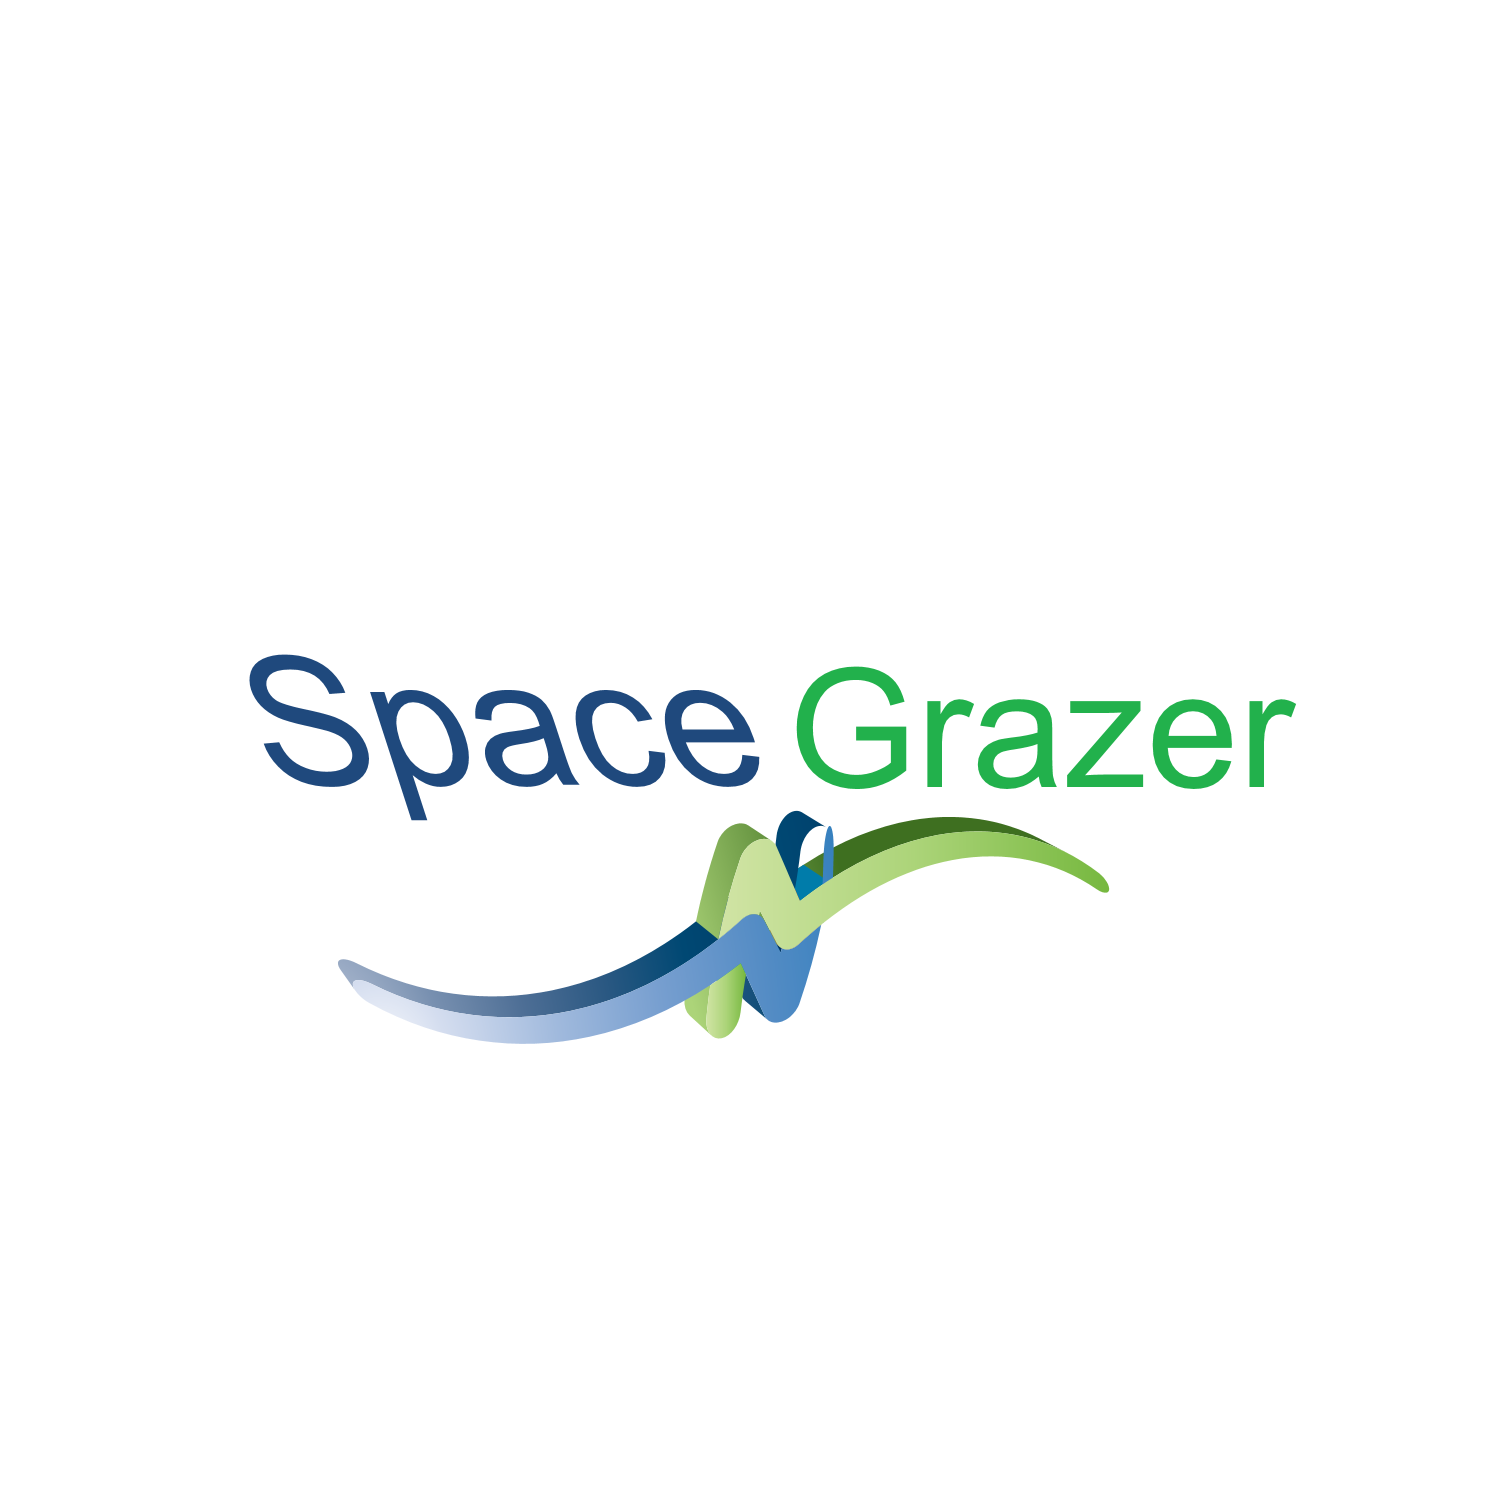 Logo Design by Melanie Fitzpatrick - Entry No. 70 in the Logo Design Contest Fun Logo Design for Spacegrazer.